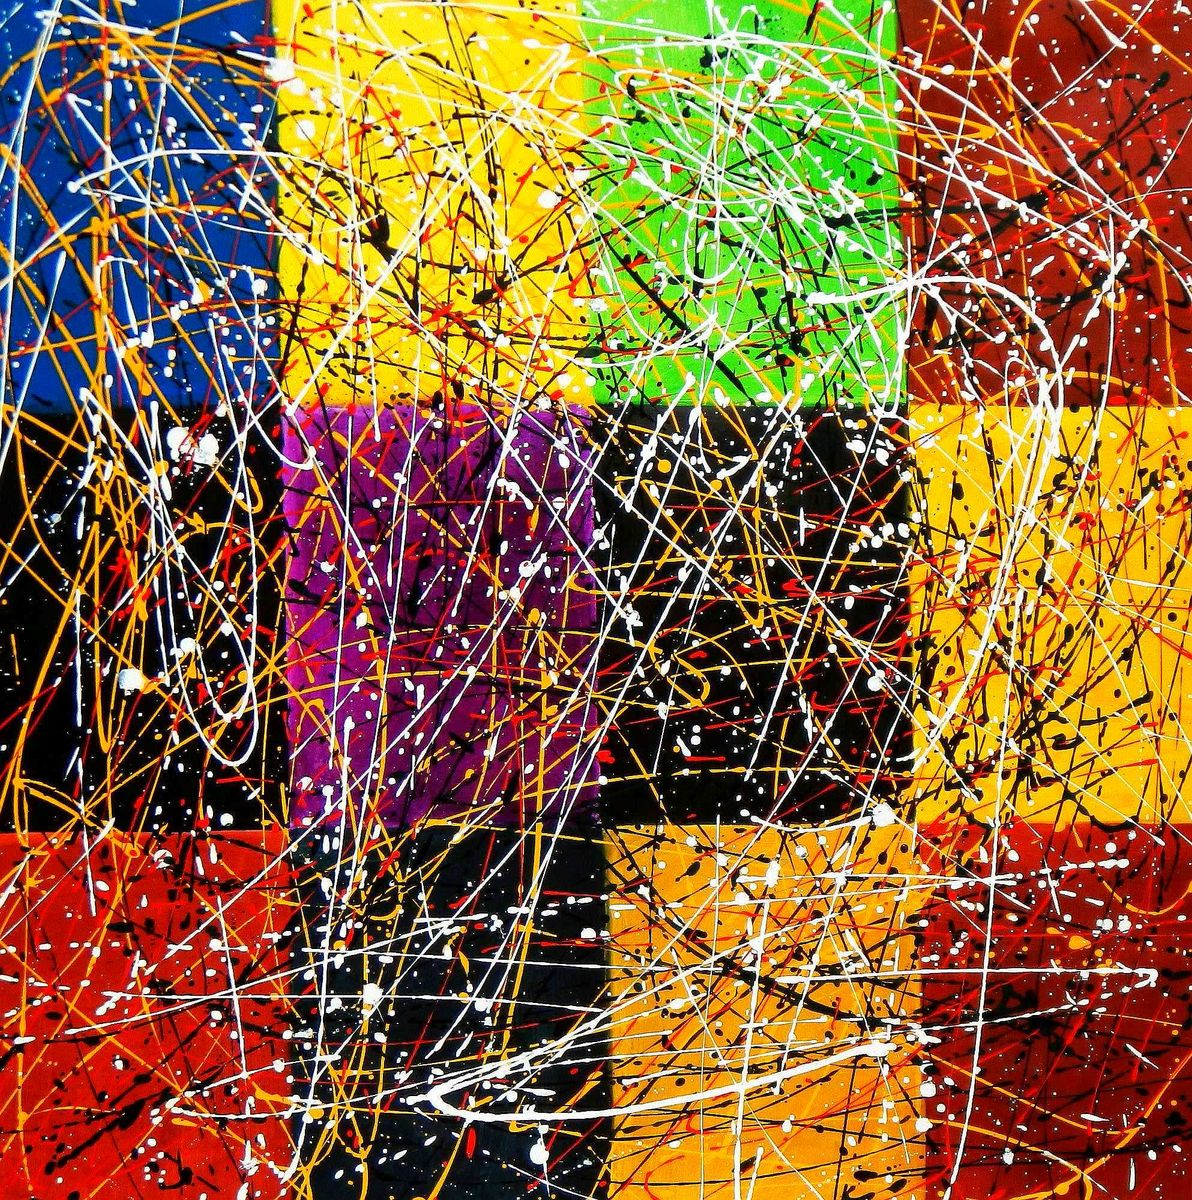 Homage of Pollock - Dripping over cubes m95947 120x120cm abstraktes Ölgemälde handgemalt